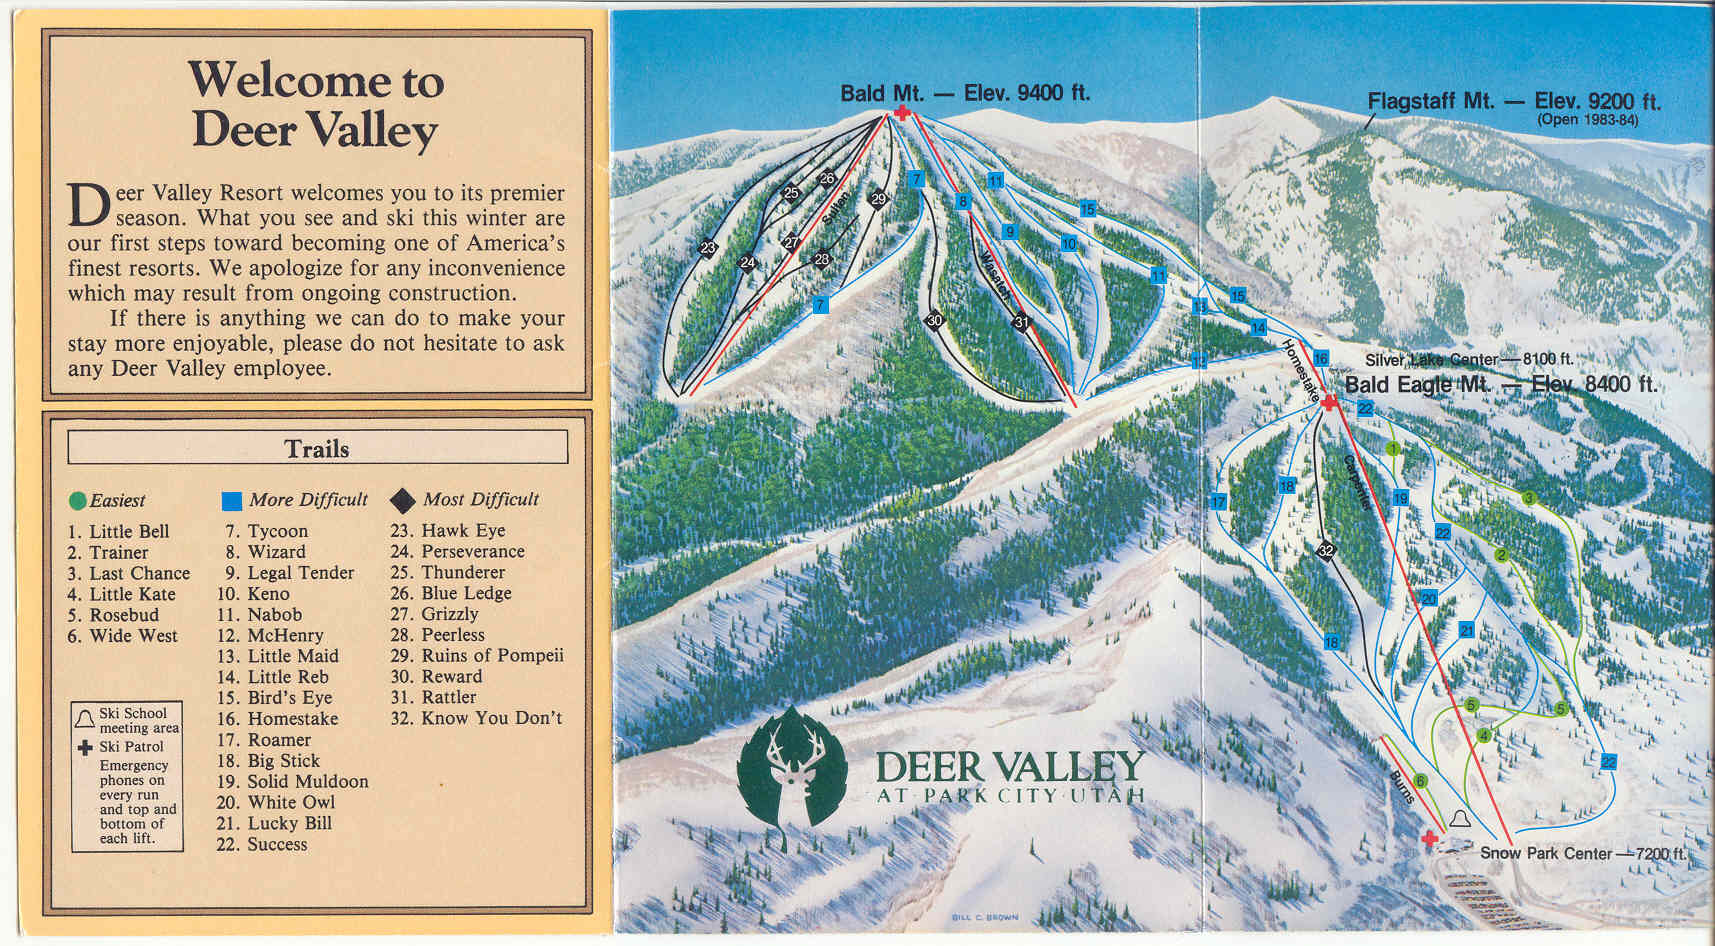 Deer Valley Resort - SkiMap.org on